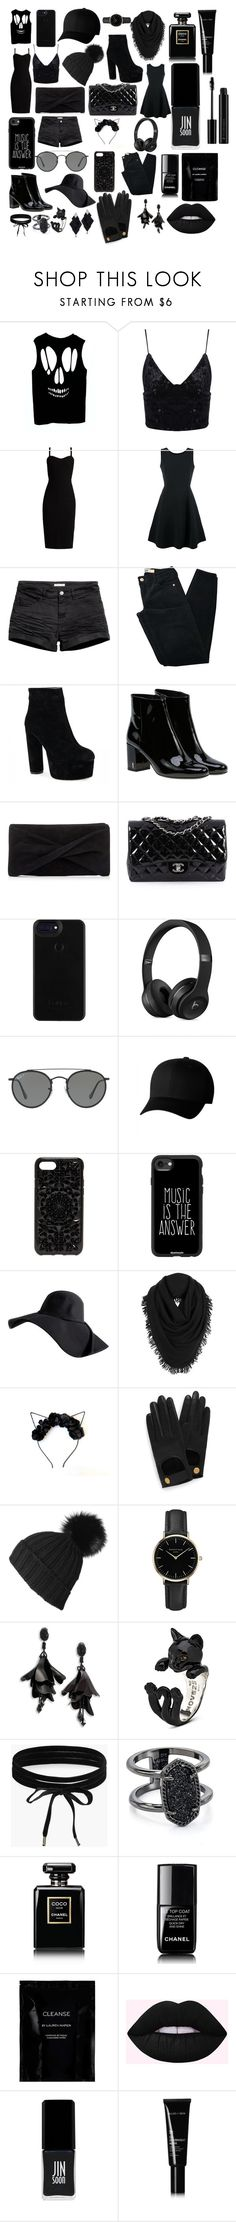 """""""Black"""" by scootpollock ❤ liked on Polyvore featuring MaxMara, Emporio Armani, Brandy Melville, Yves Saint Laurent, Reiss, Chanel, Ray-Ban, Flexfit, Felony Case and Casetify"""